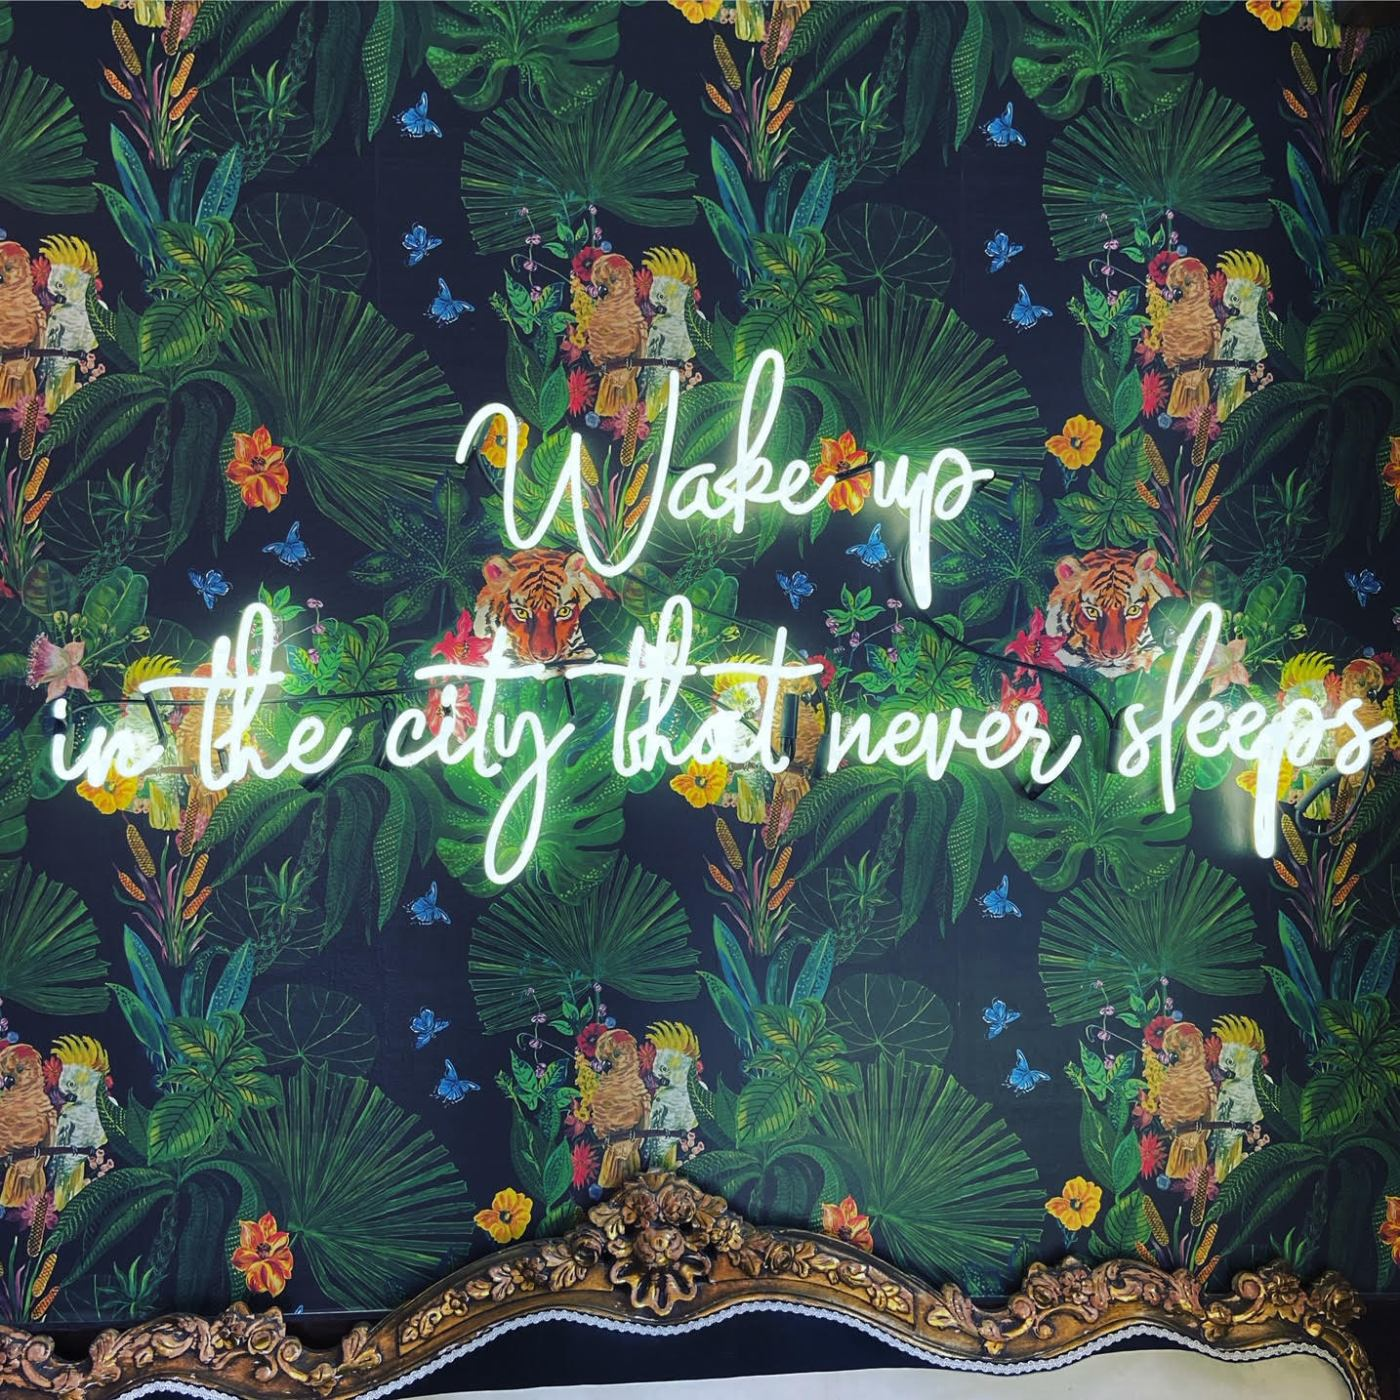 """Wallpaper with LED lights that say """"Wake up in the city that never sleeps"""""""